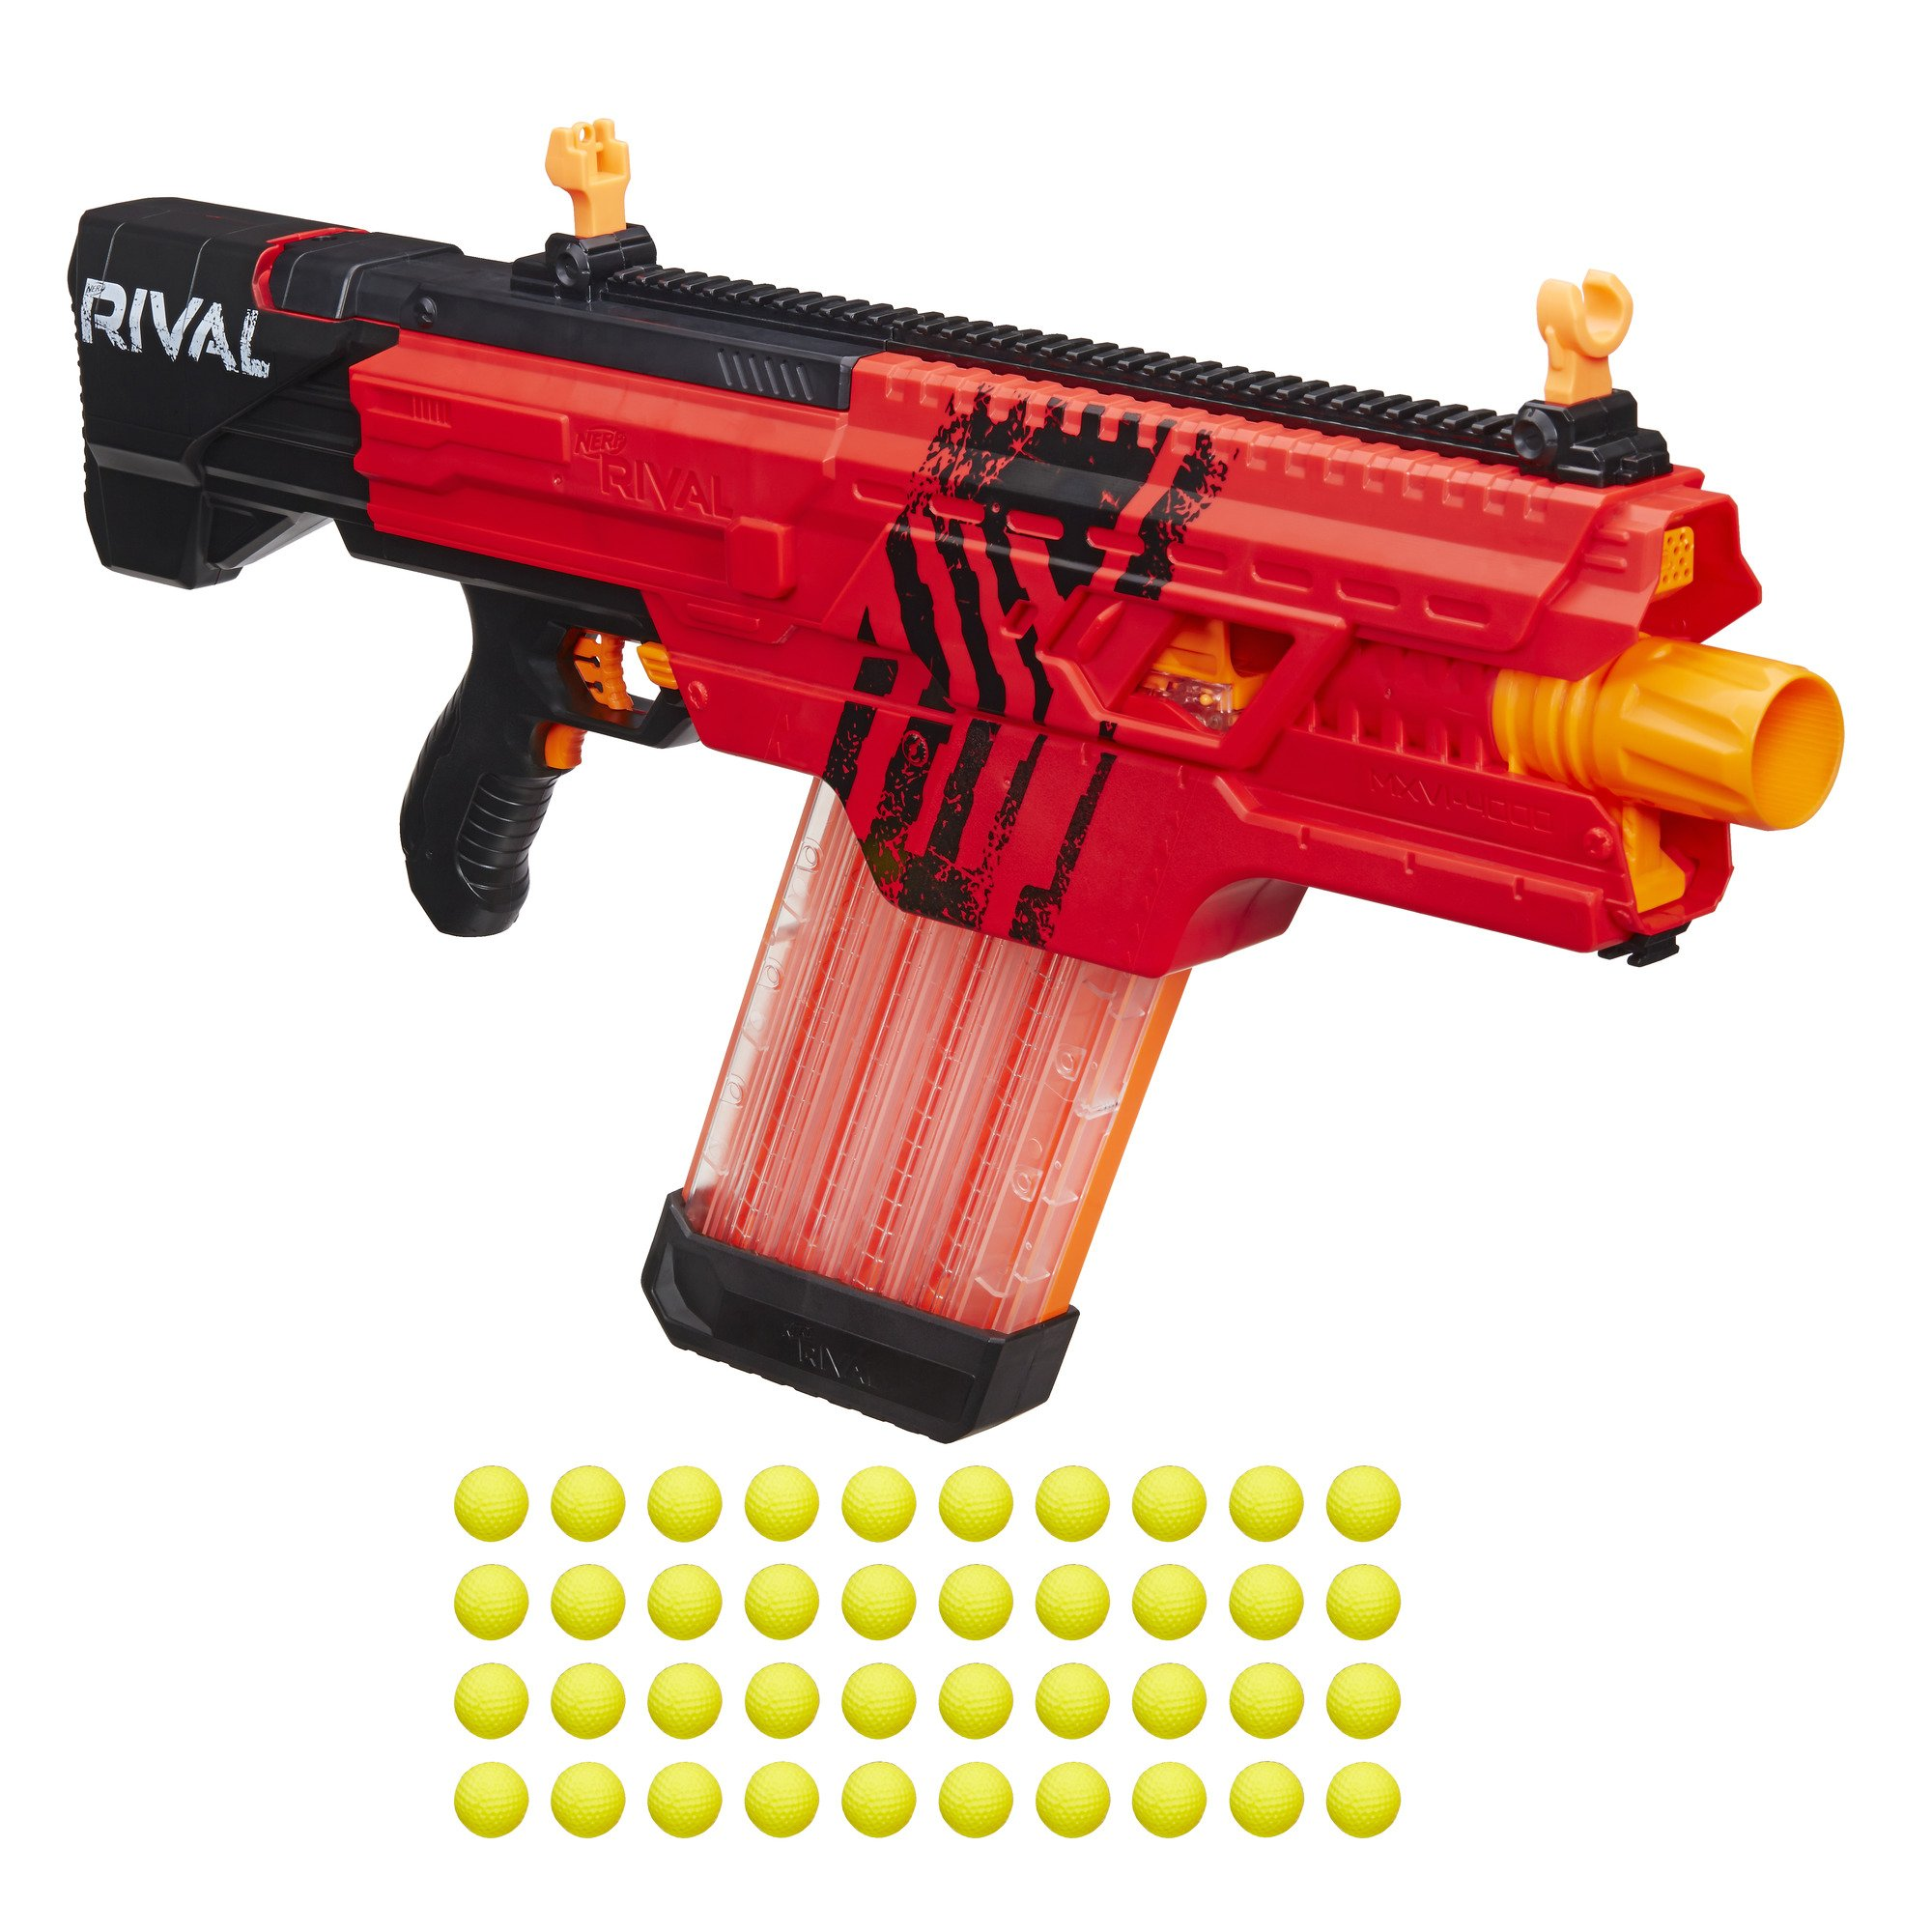 Nerf Rival Khaos MXVI-4000 Blaster (Red) by NERF (Image #1)